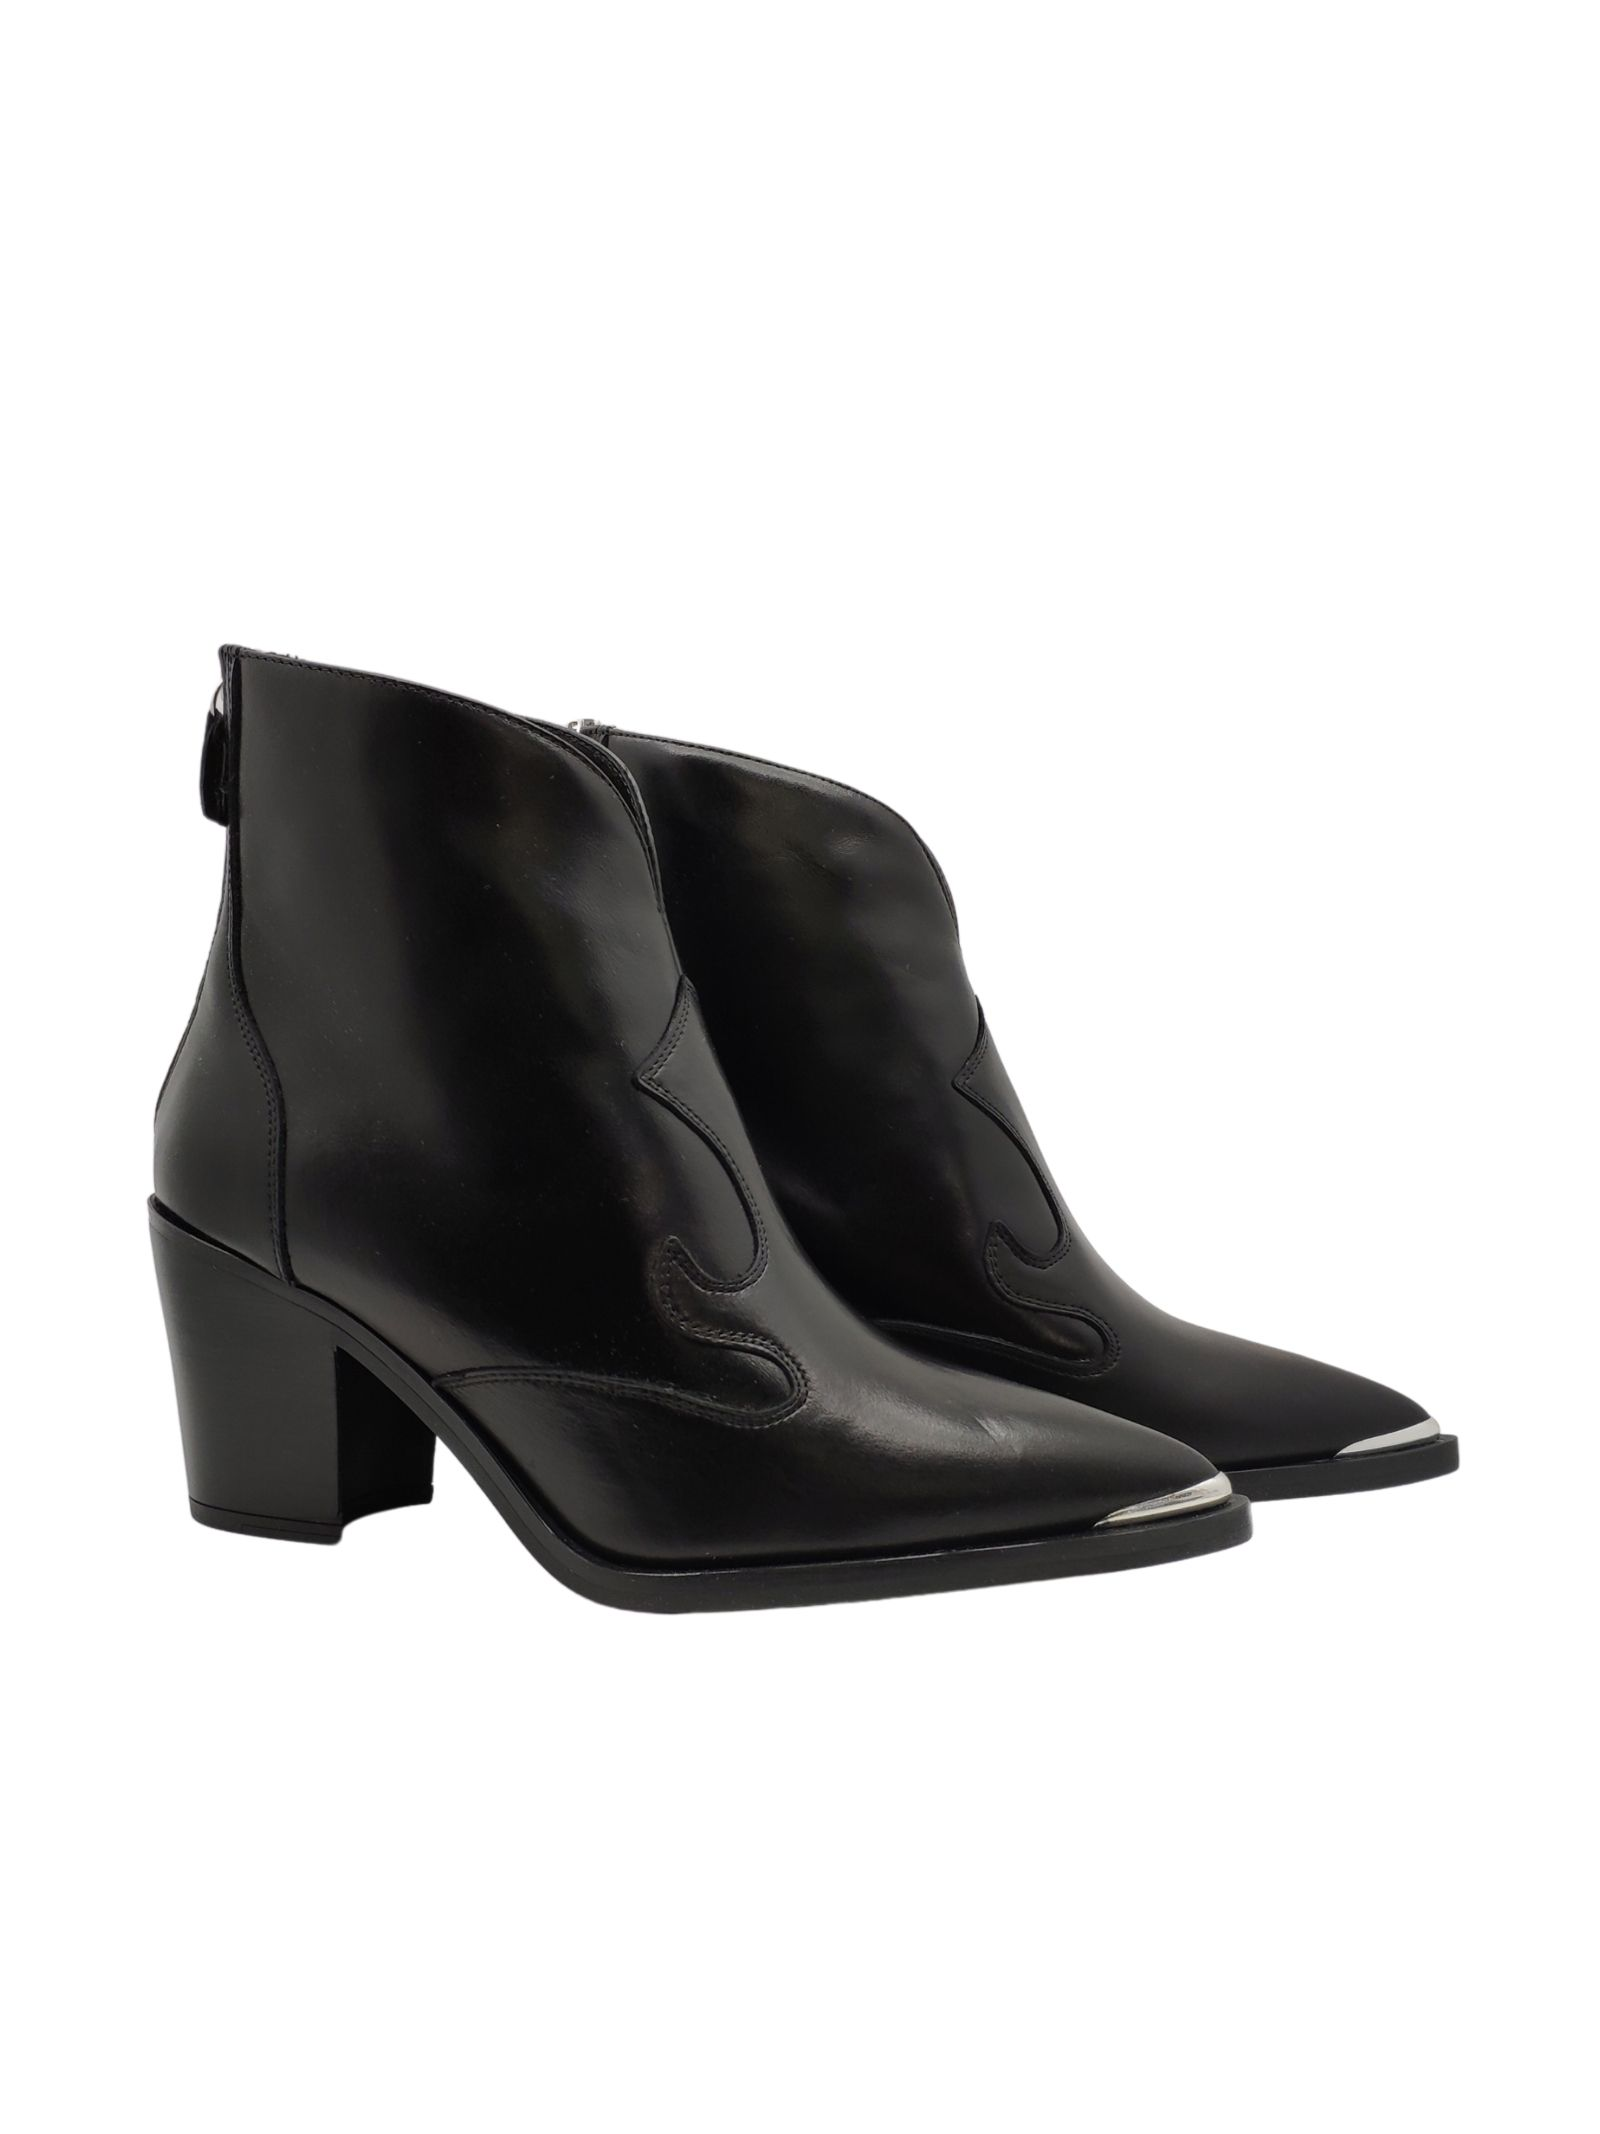 Women's Ankle Boots Unisa | Ankle Boots | MARCELLNERO